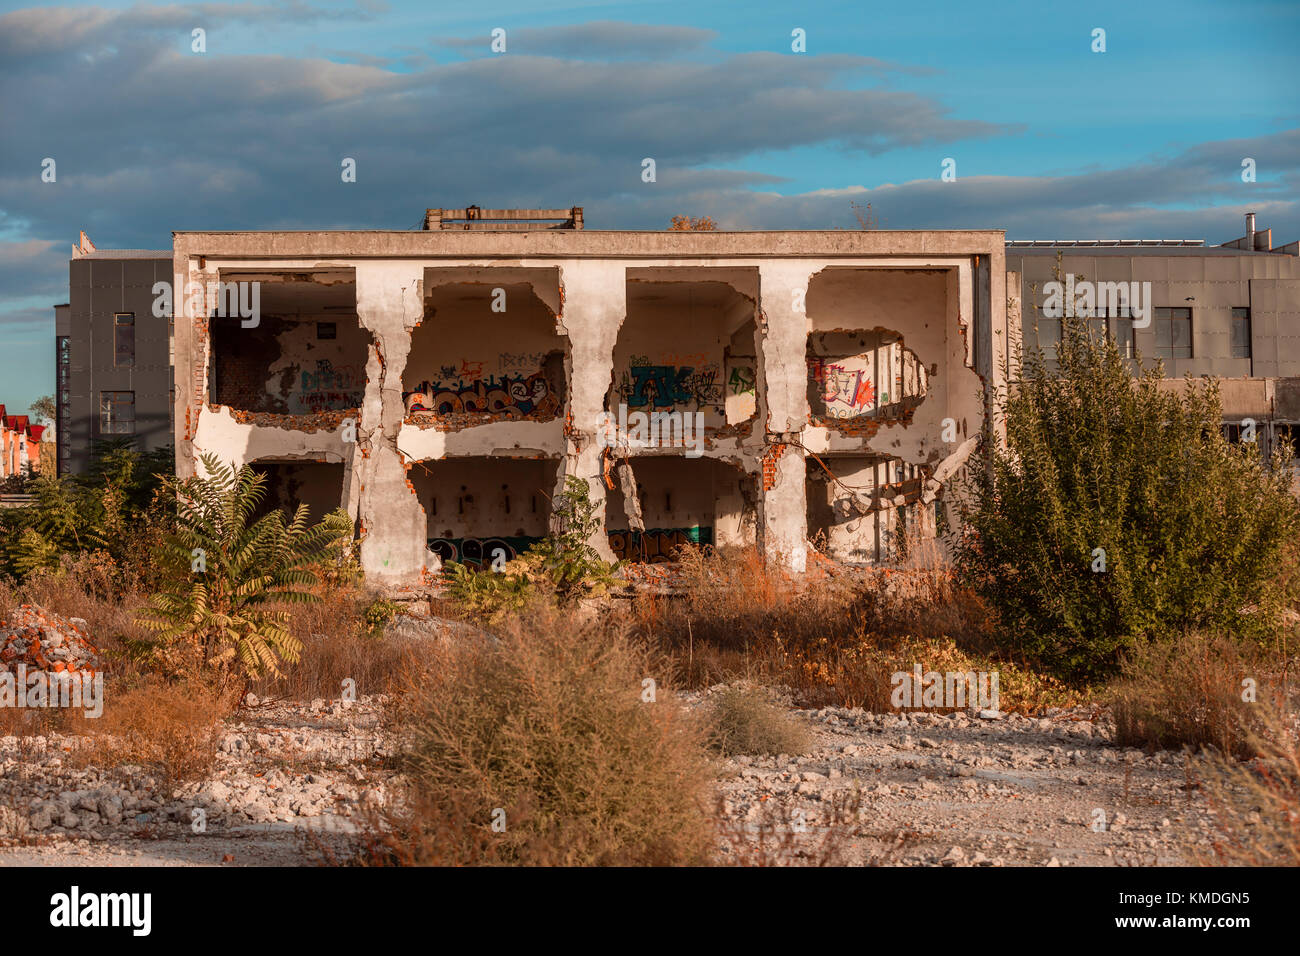 One of the Abandoned Buildings of a Post Communist Industrial Complex - Stock Image